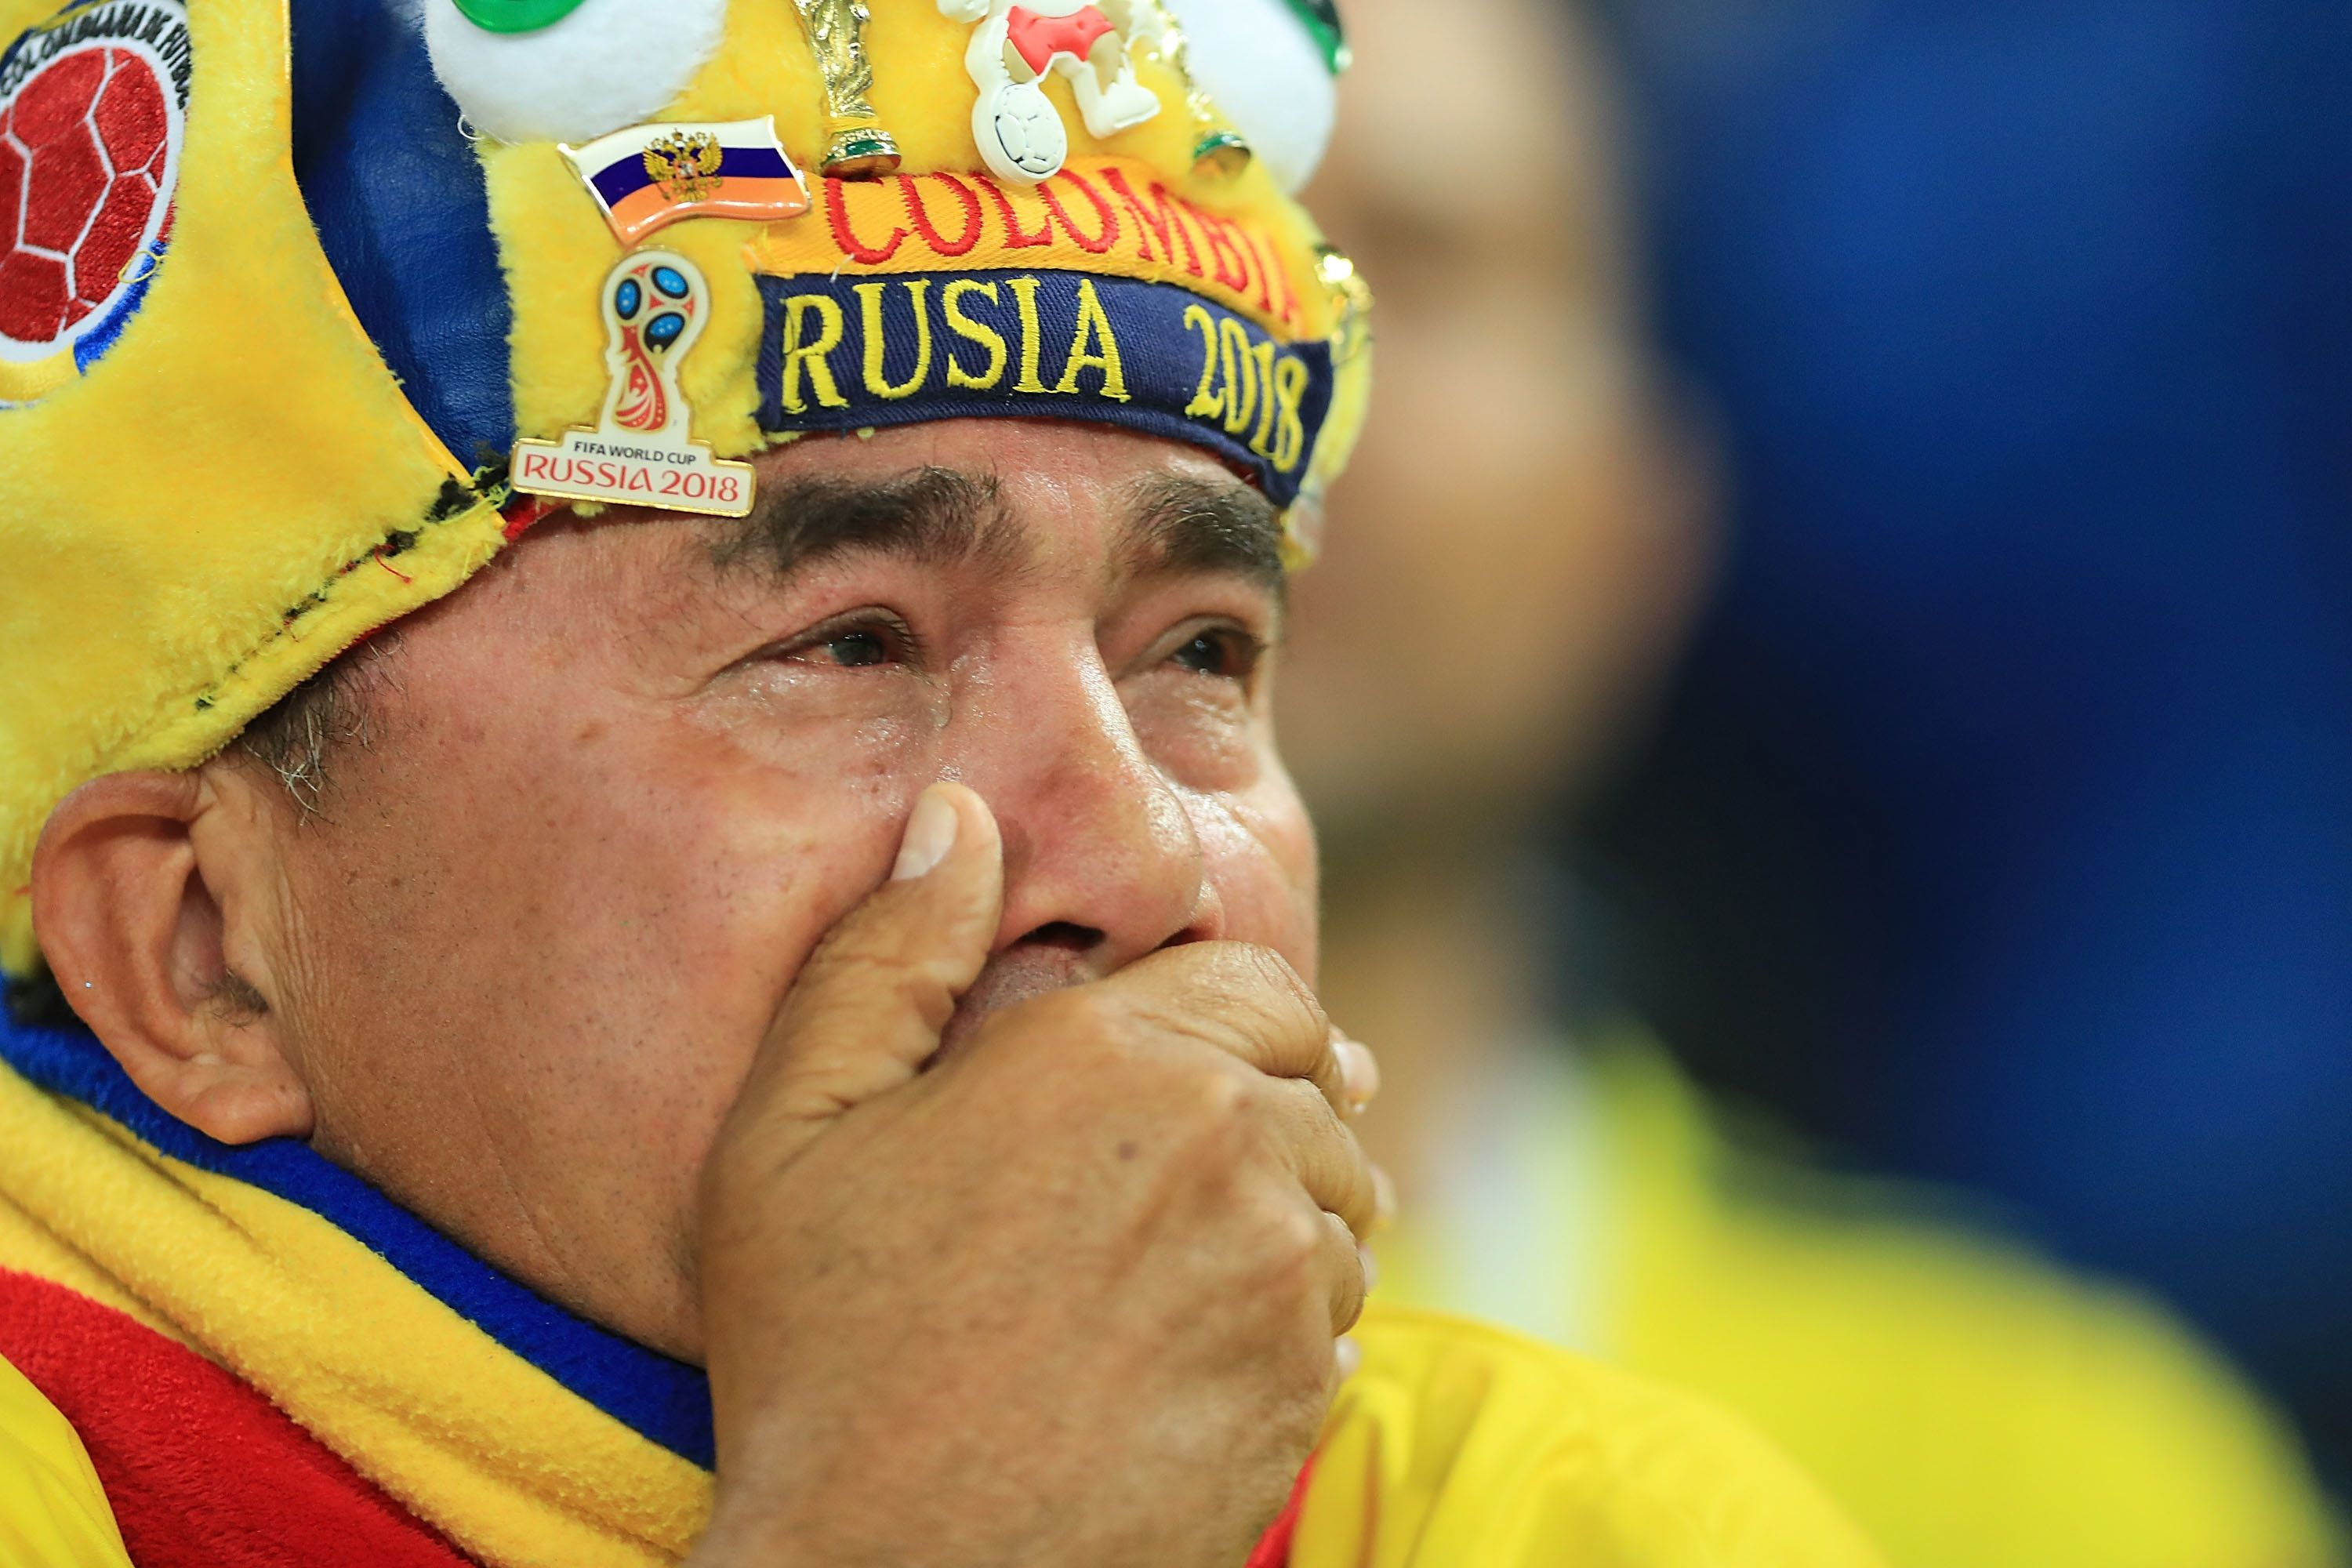 A World Cup spectator in Moscow after a match between Colombia and England, July 3. Since the start of the World Cup in